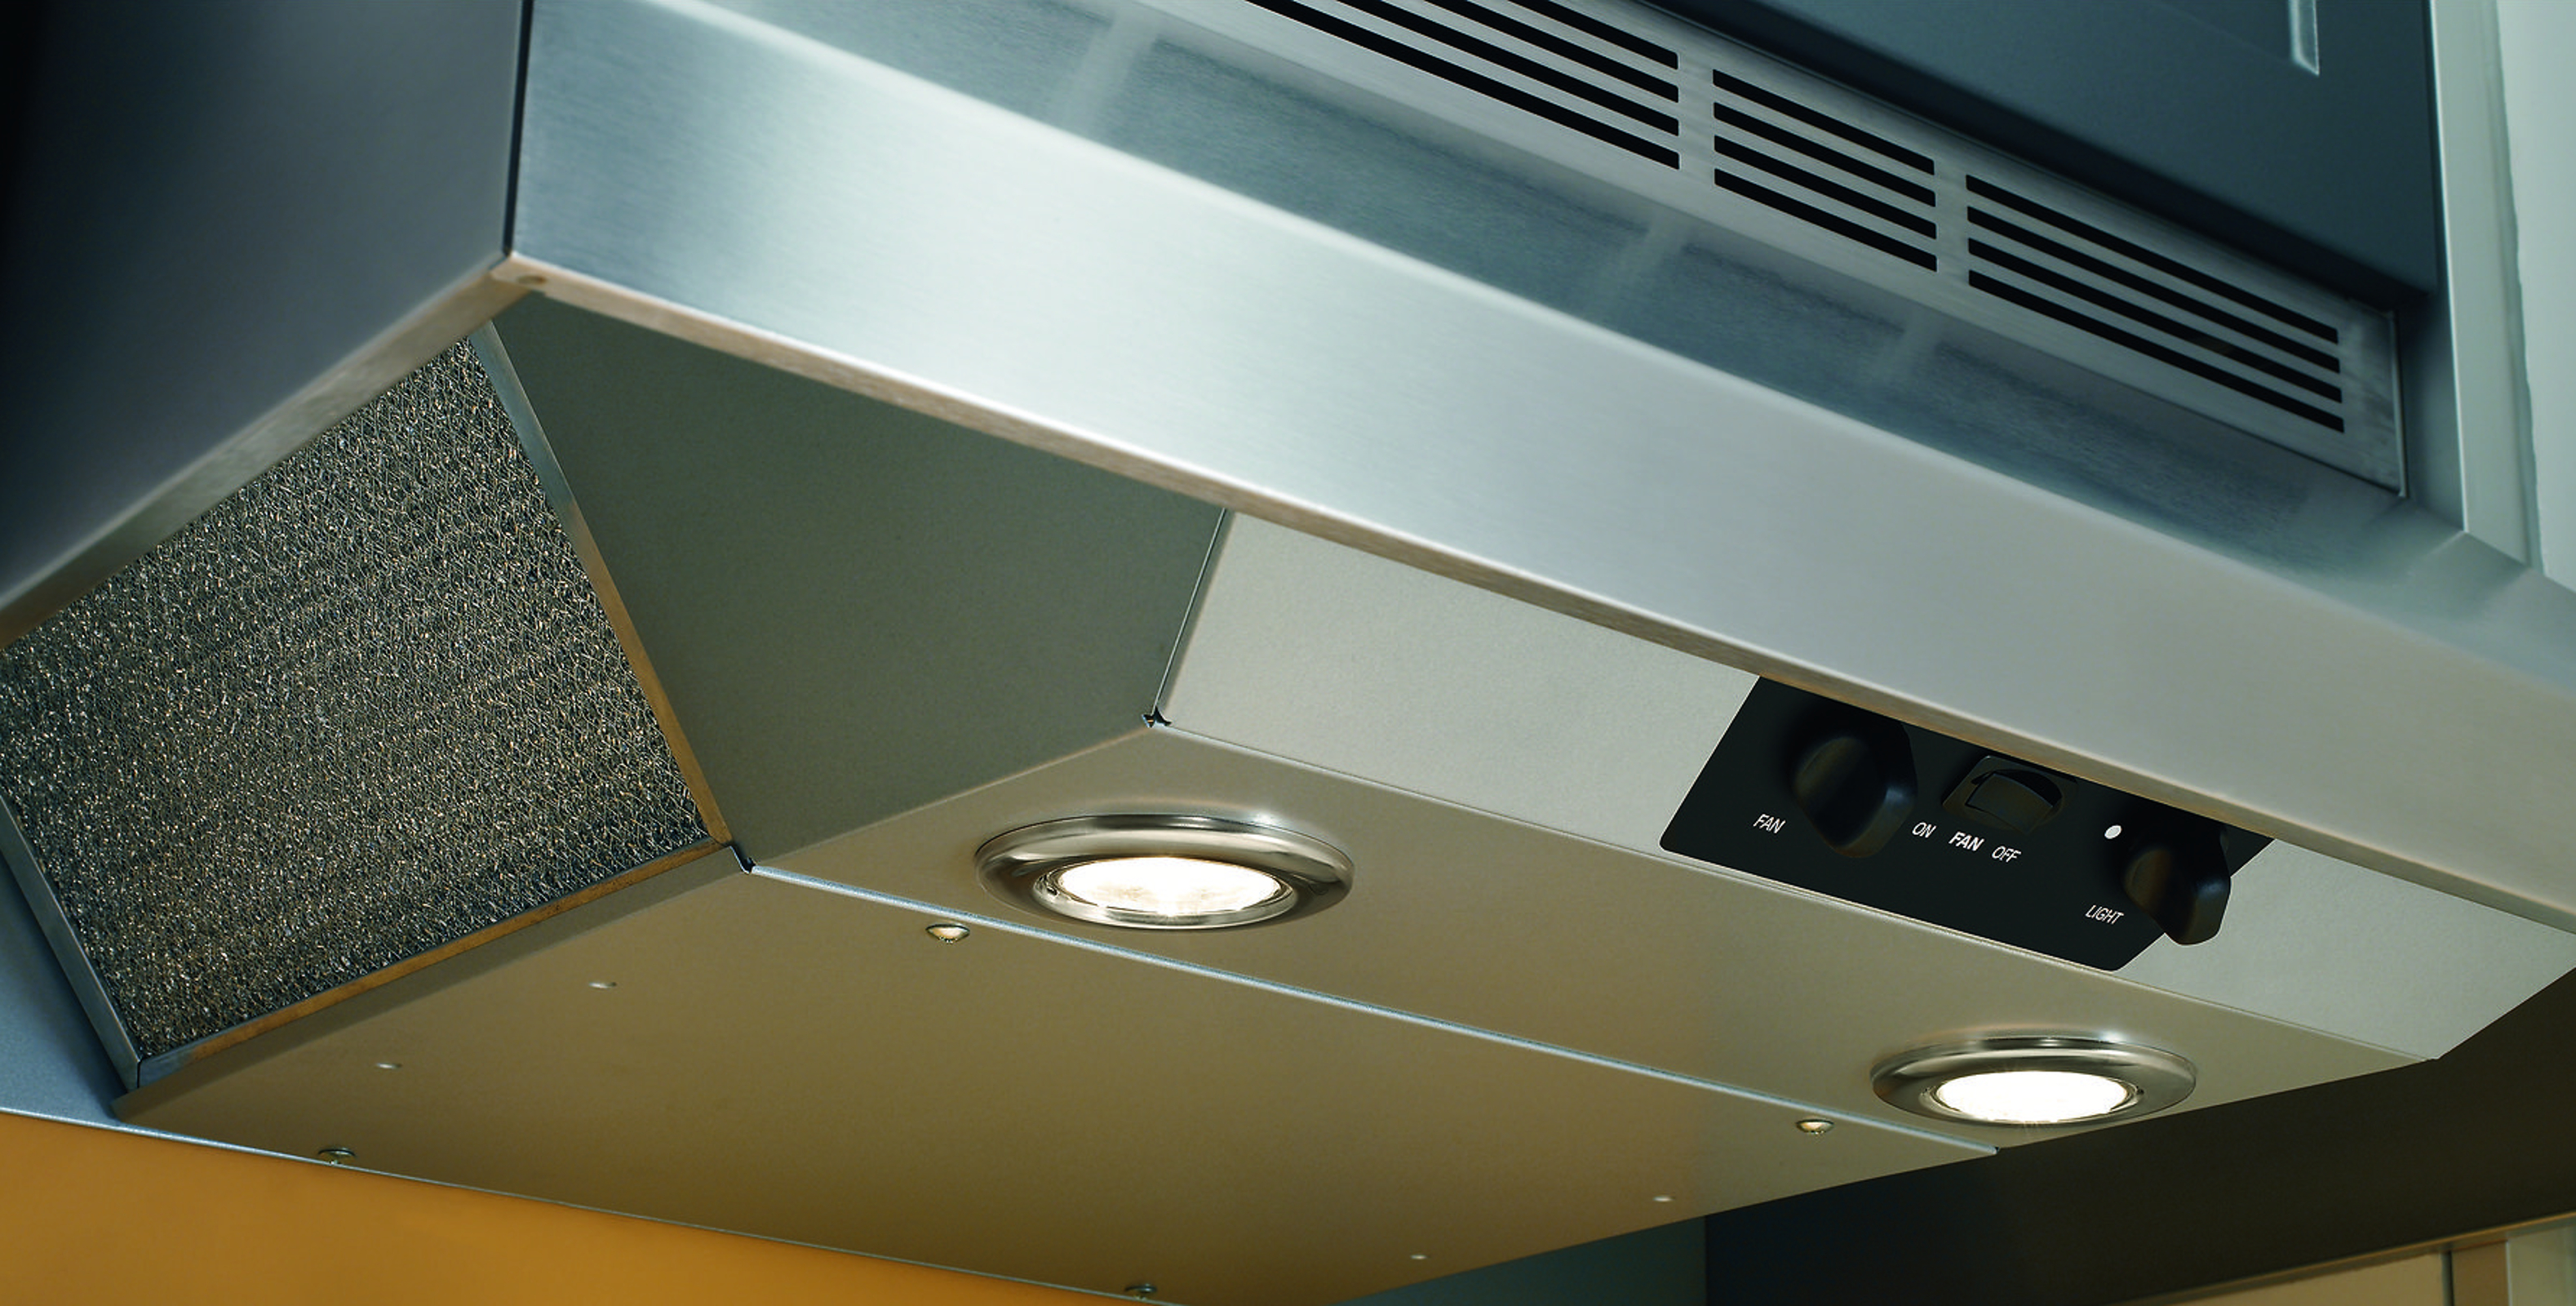 """Broan NDK35830SS 30"""" Non-Ducted Recirculating Kit for Range Hood, Stainless Steel"""